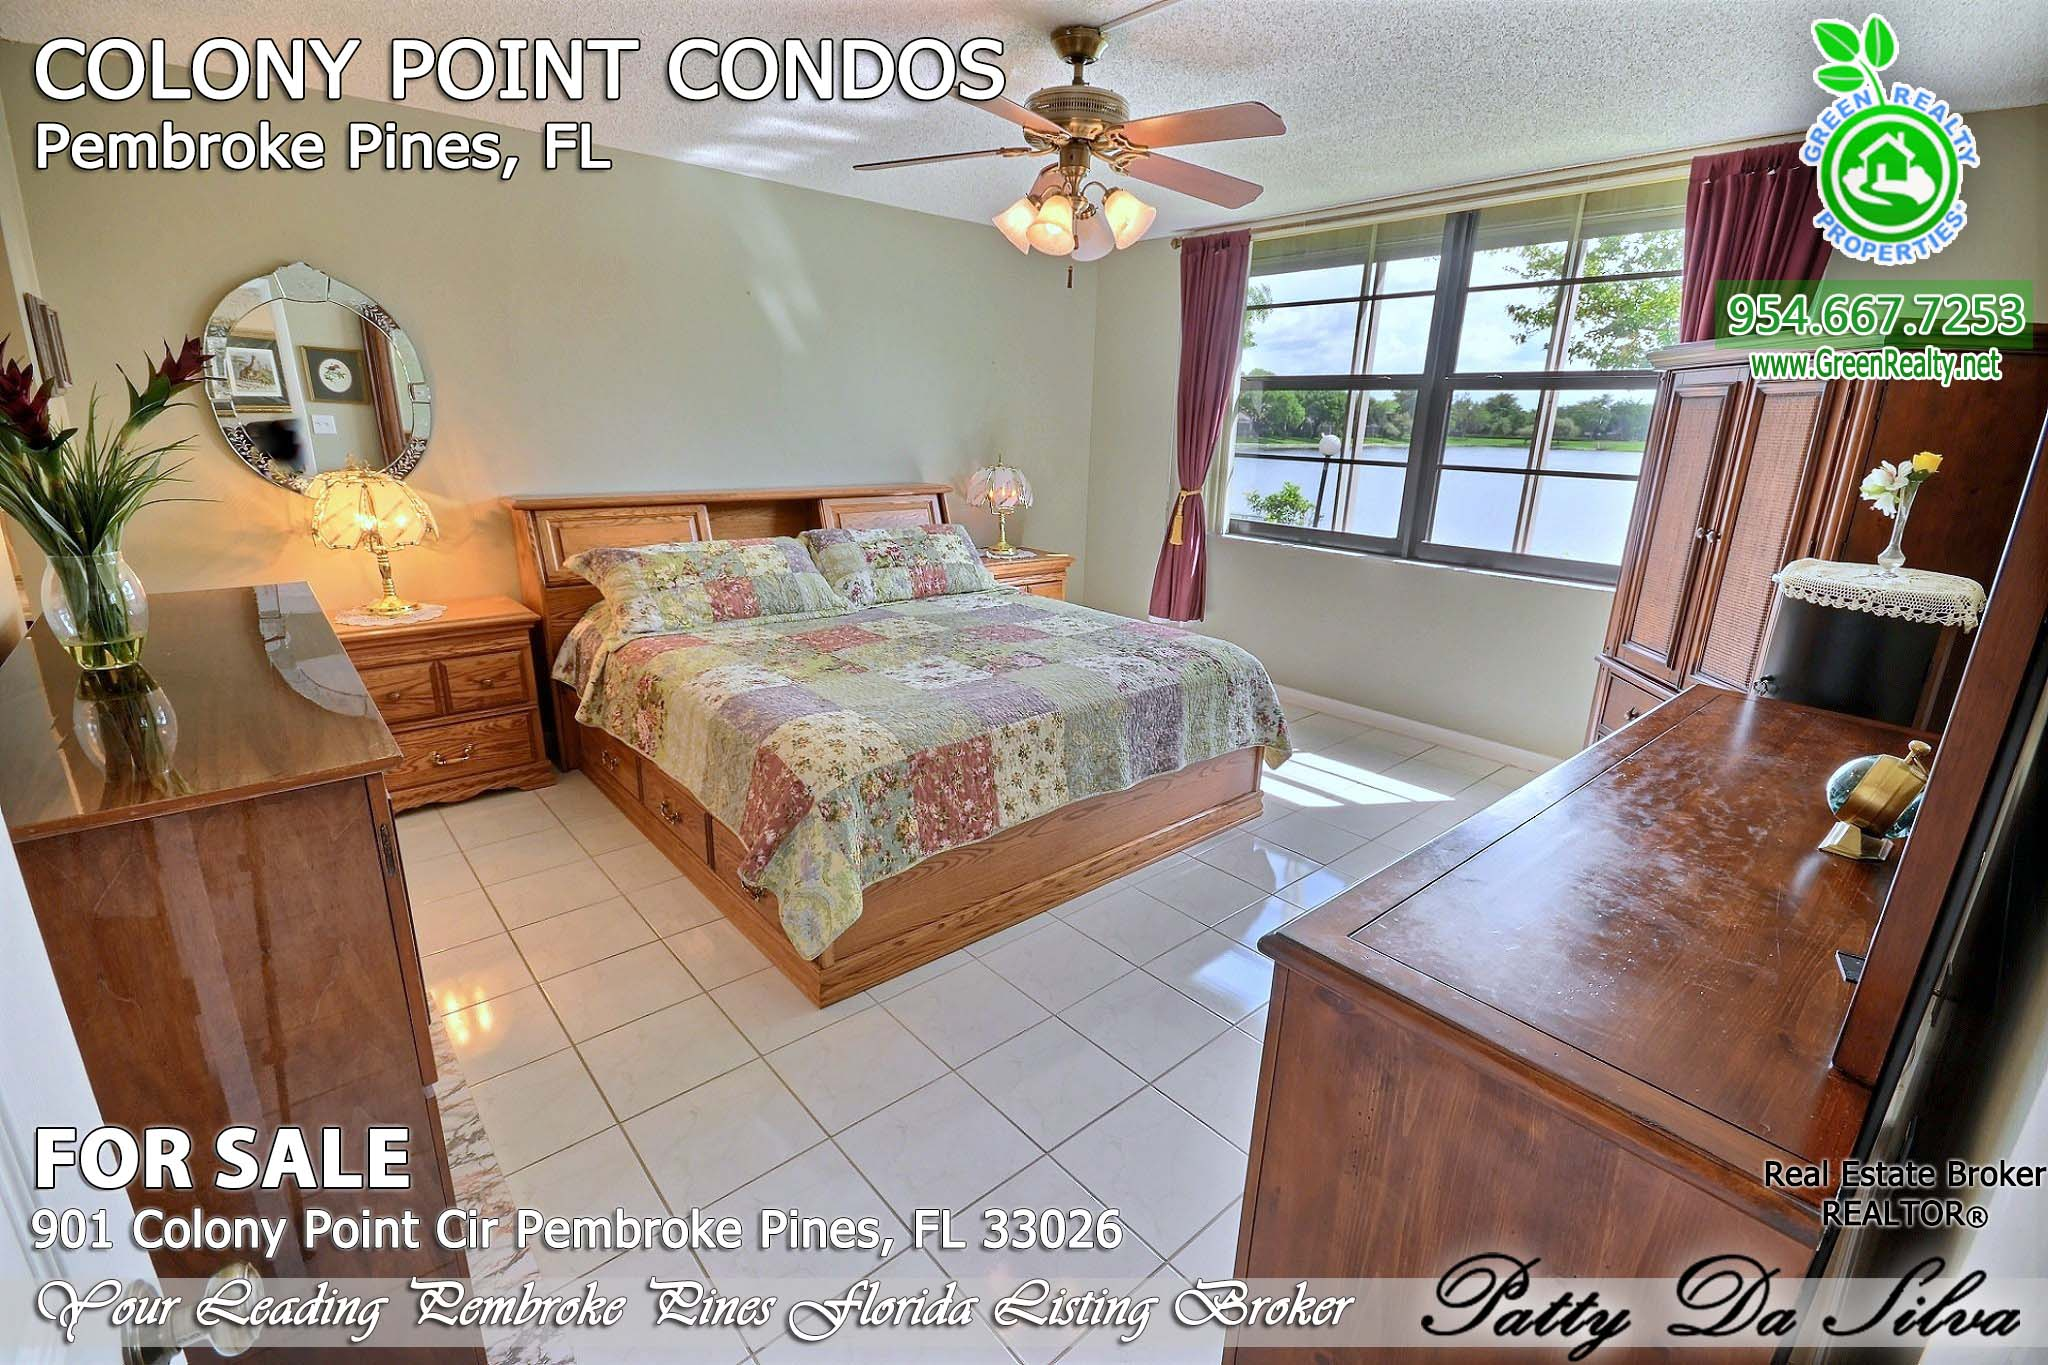 901 Colony Point Cir, Unit 112 - Pembroke Pines Homes For Sale (15)